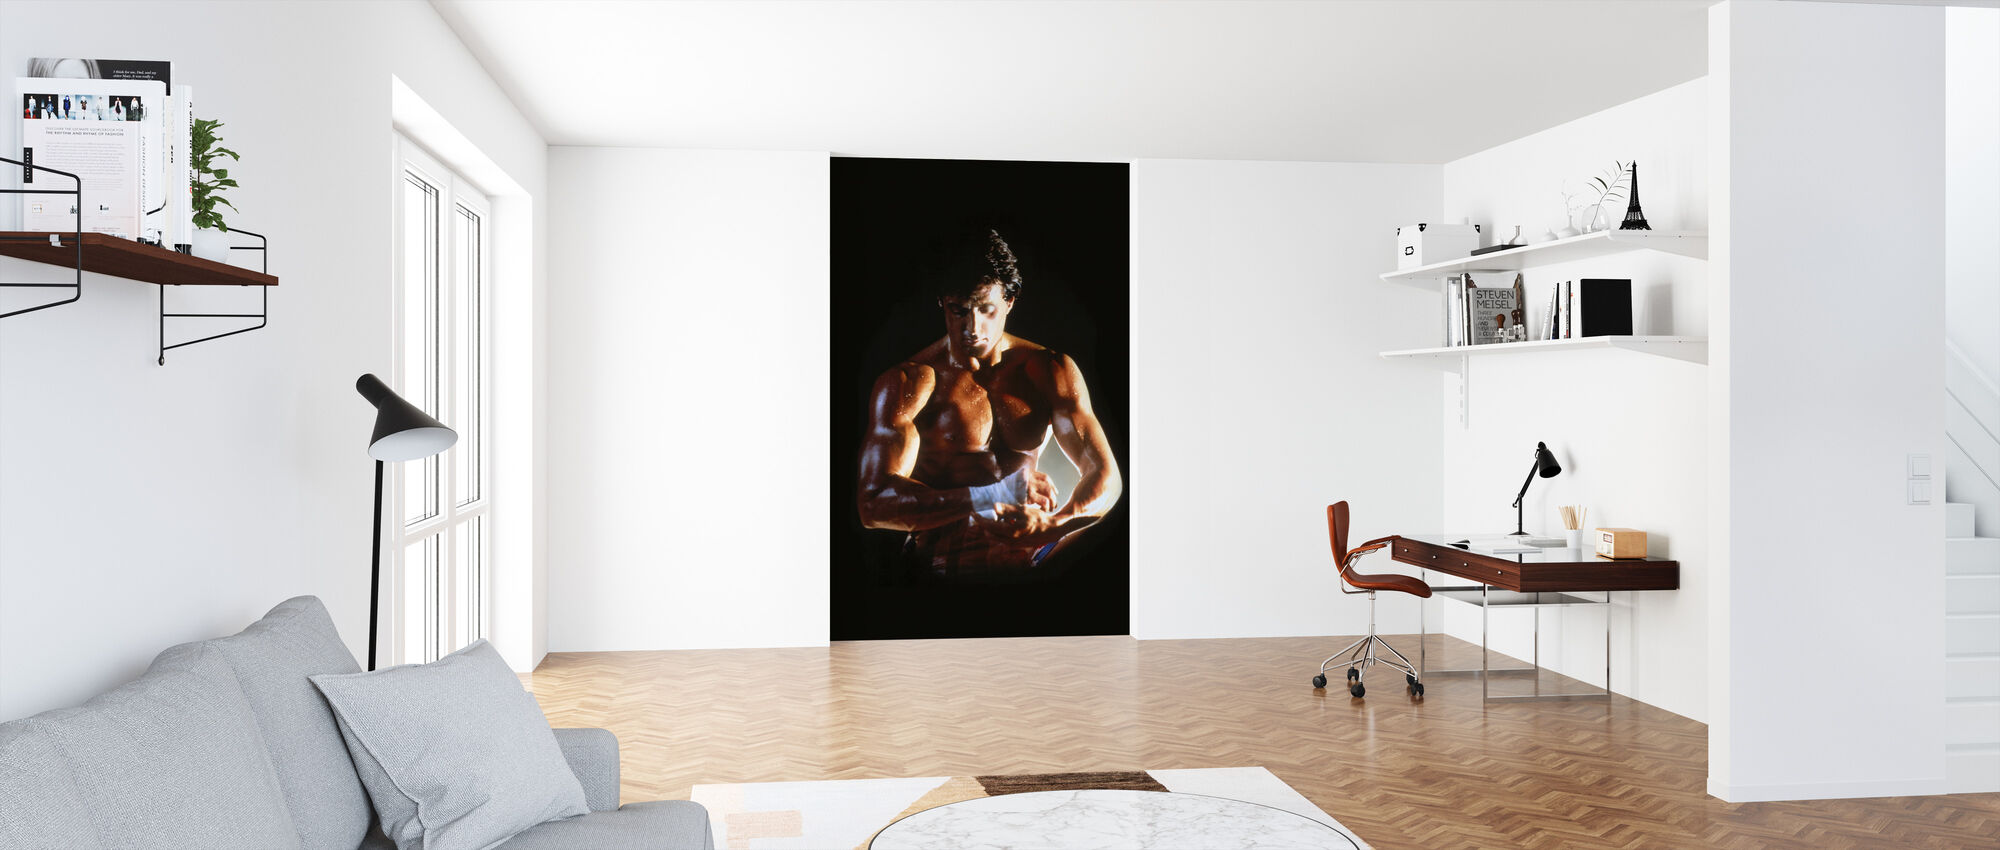 Sylvester Stallone in Rocky IV - Wallpaper - Office